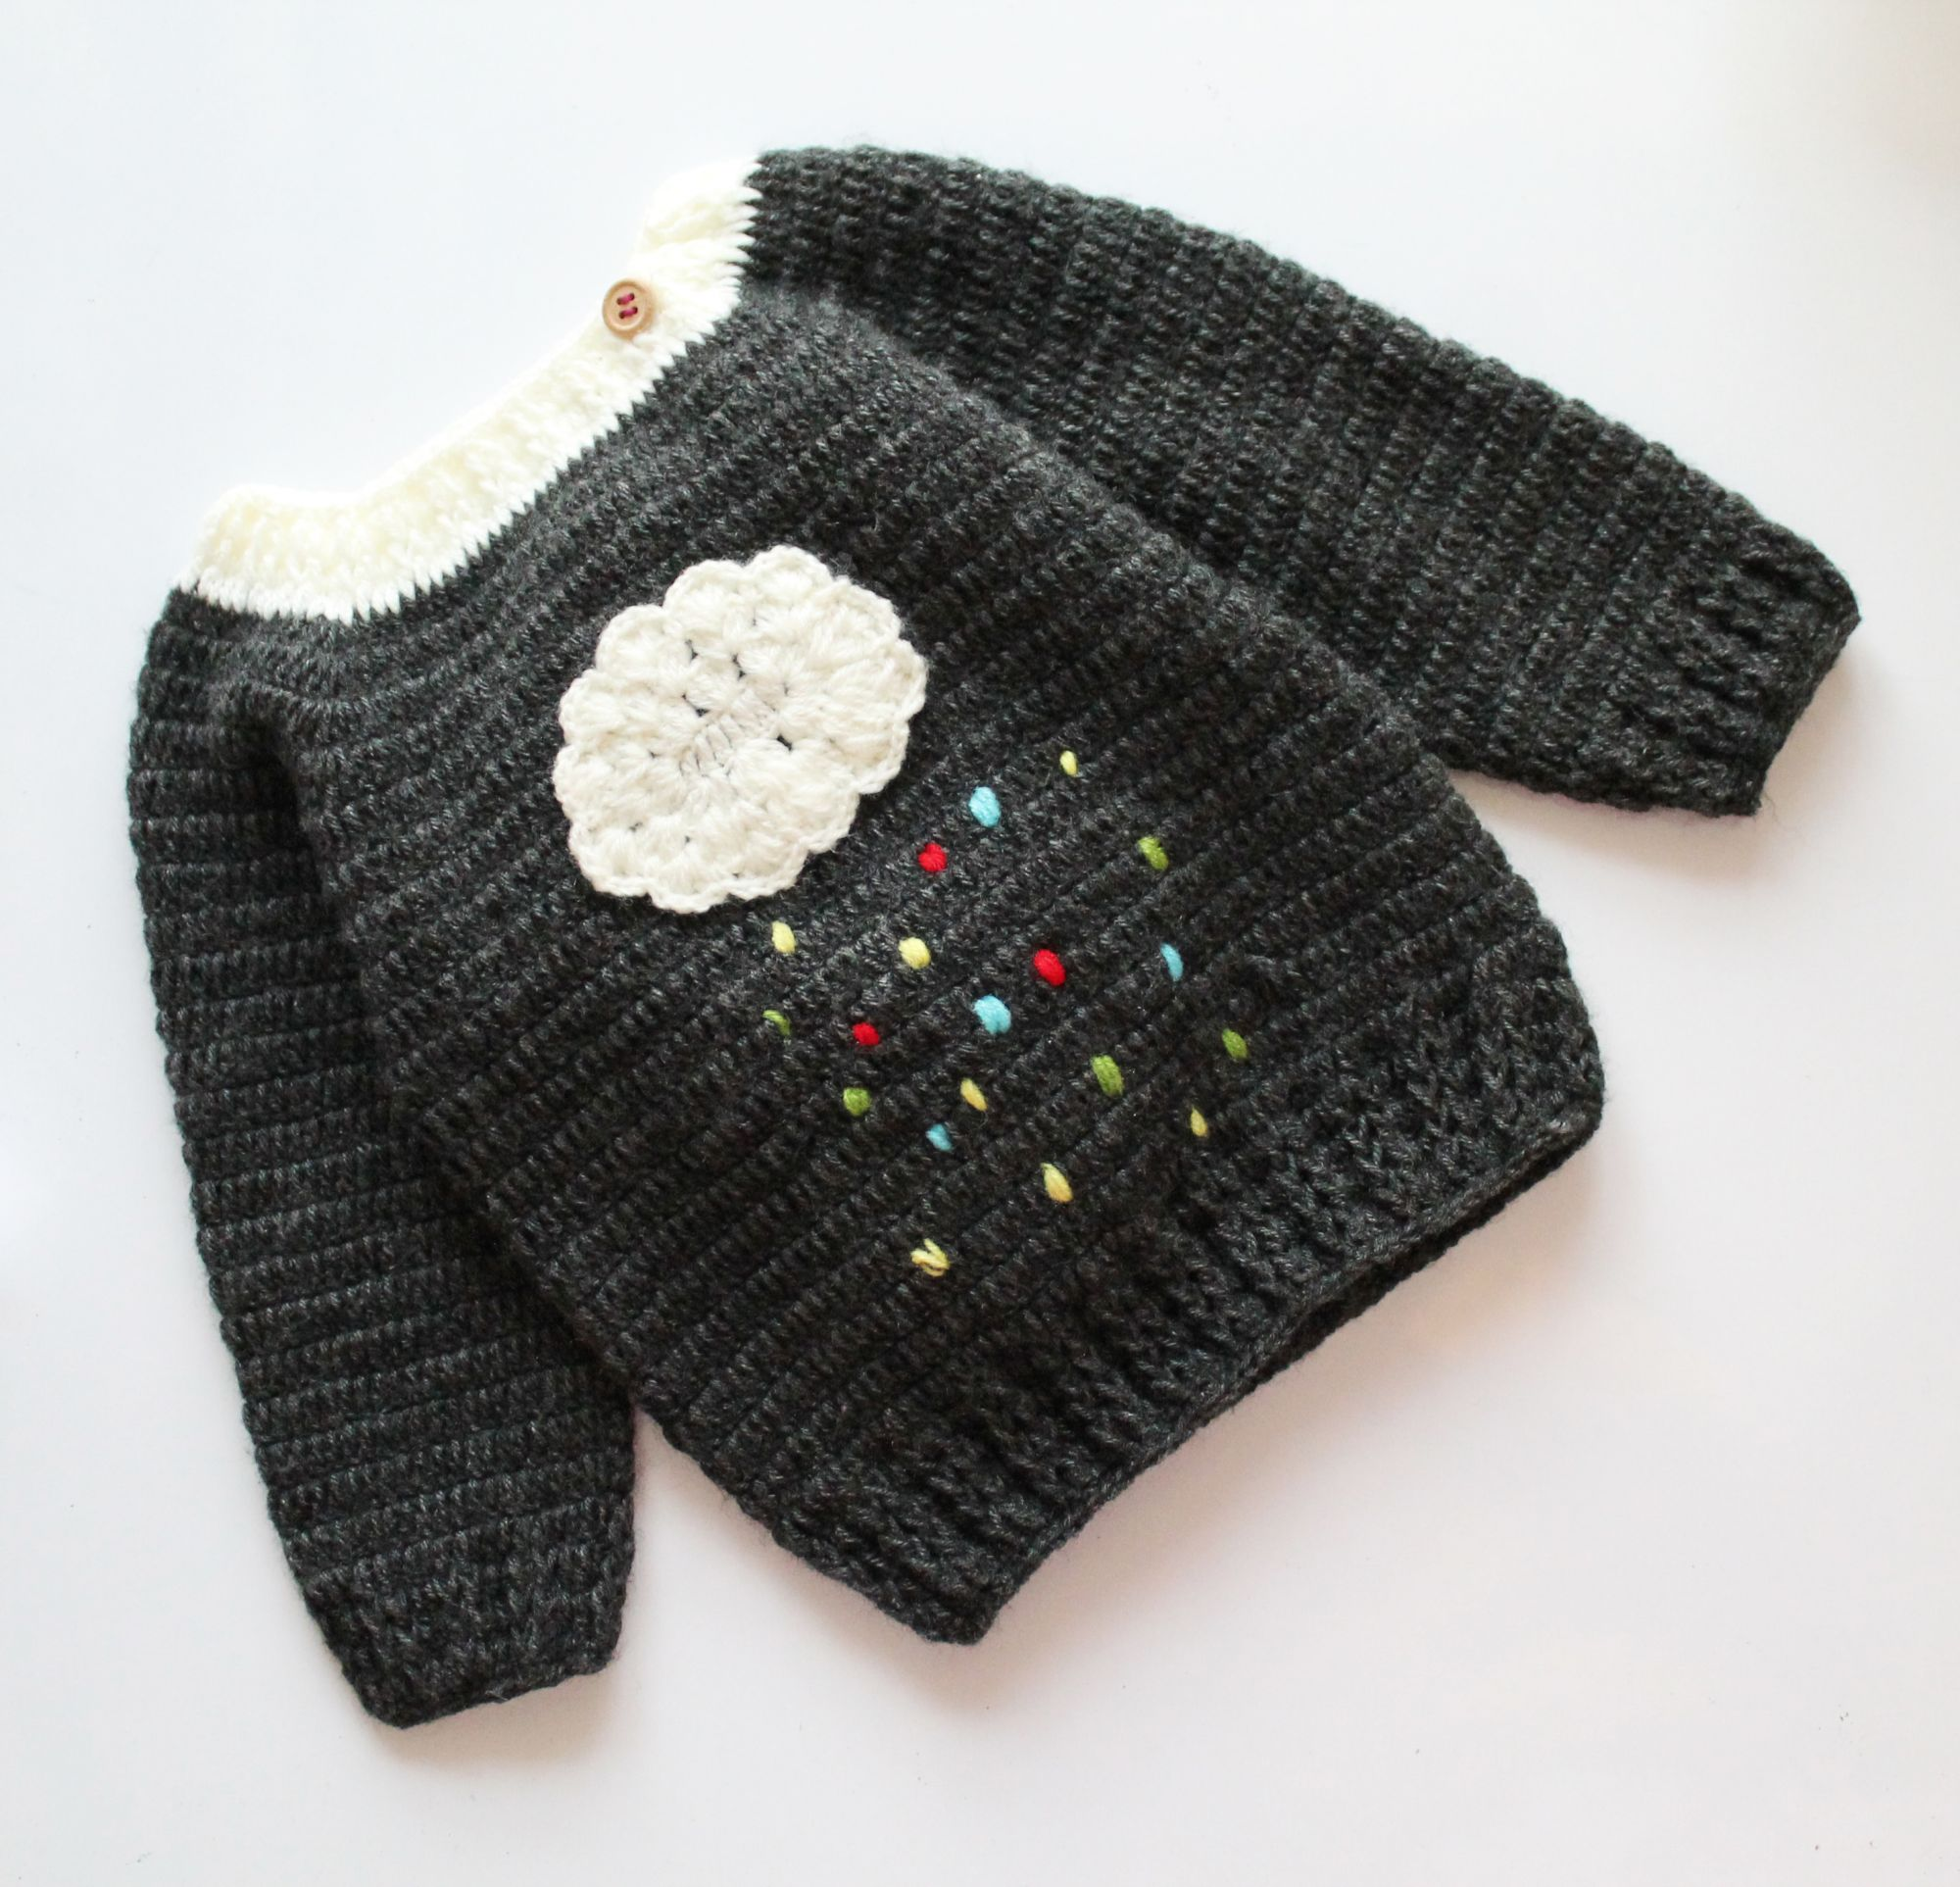 Woonie Handmade Grey Cloud Applique Sweater for Kids